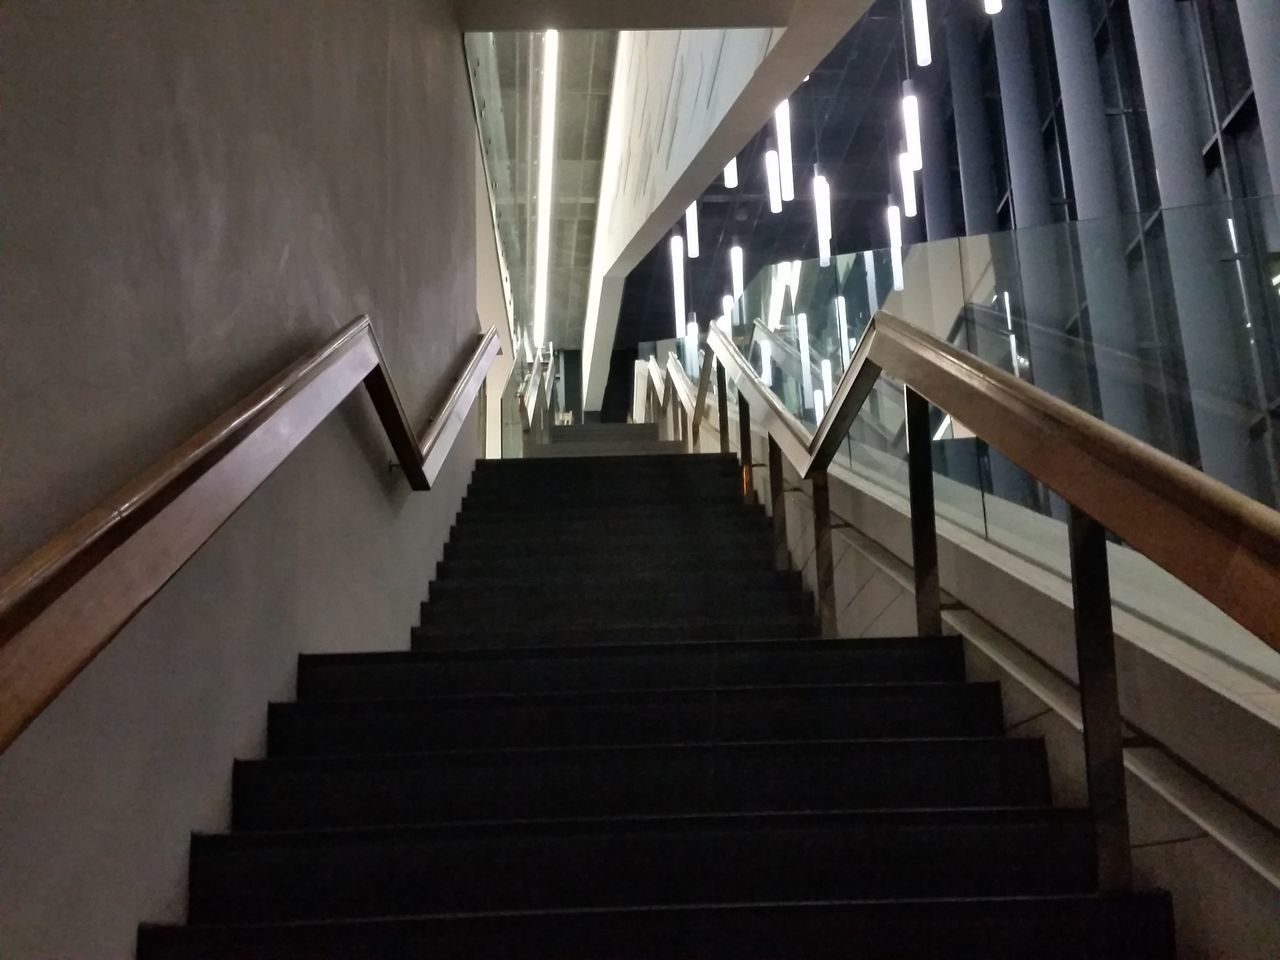 Staircase Steps Steps And Staircases Railing Indoors  Architecture The Way Forward Built Structure No People Low Angle View Day